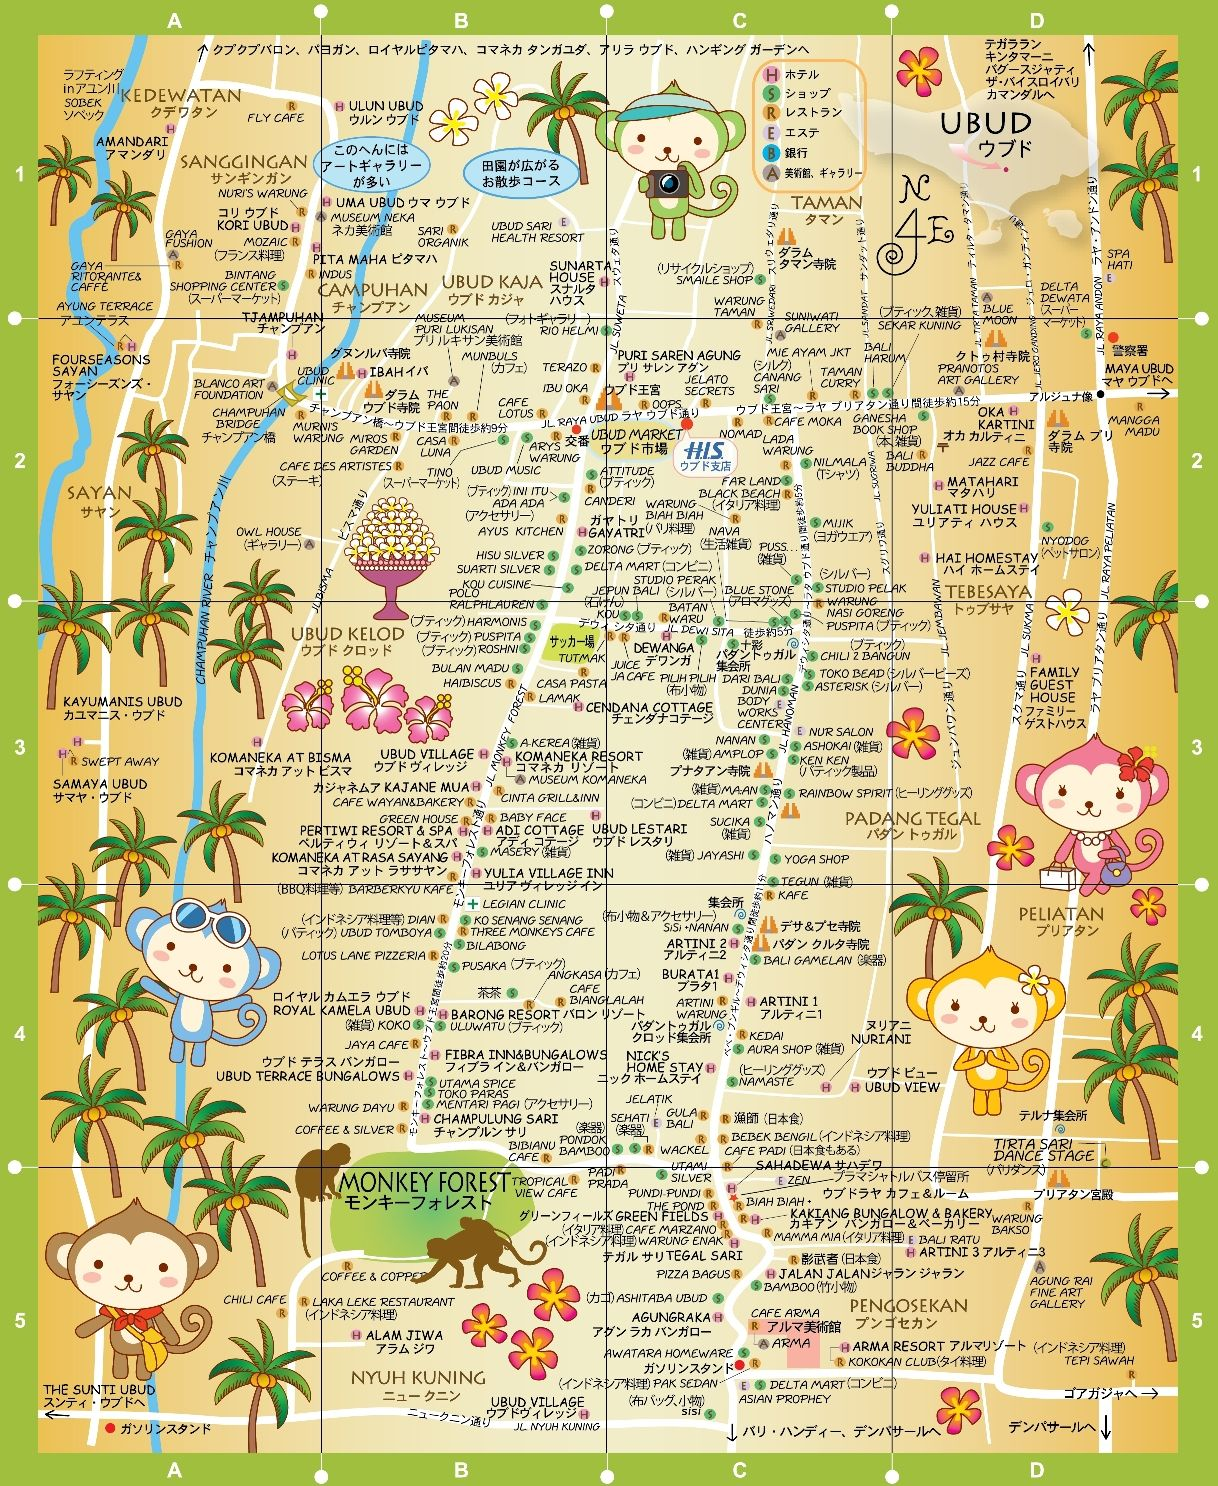 The Best Ever Map of Ubud | Taking on the World